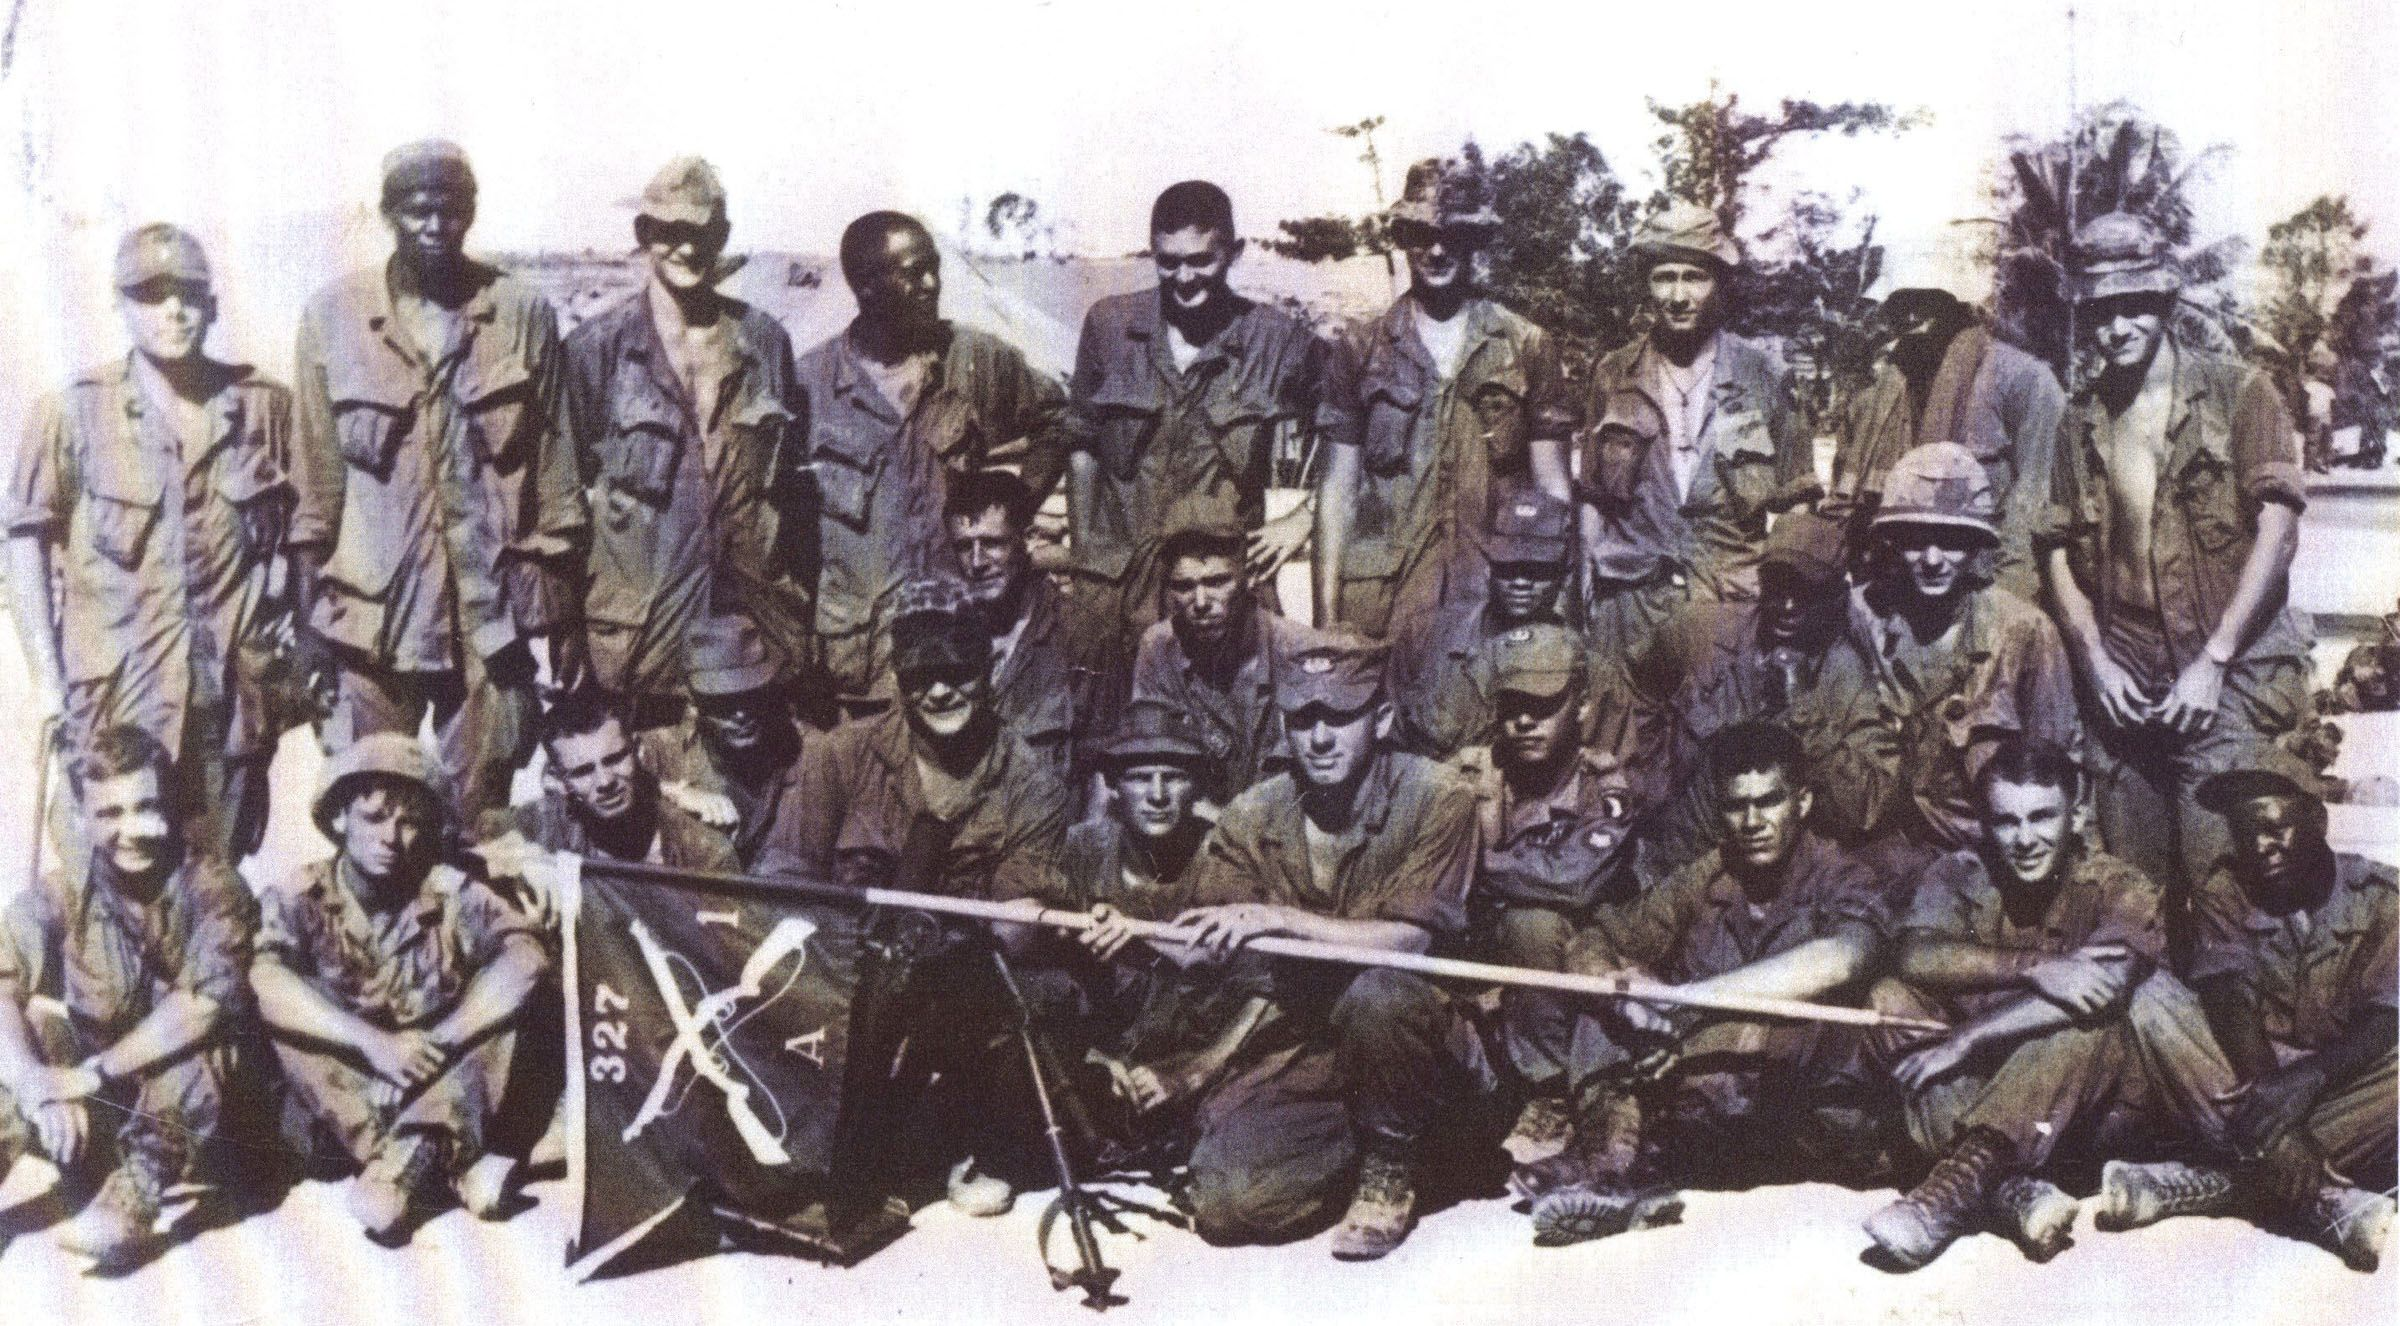 Image result for 101st airborne training photo 1969 eagle on my image result for 101st airborne training photo 1969 sciox Choice Image